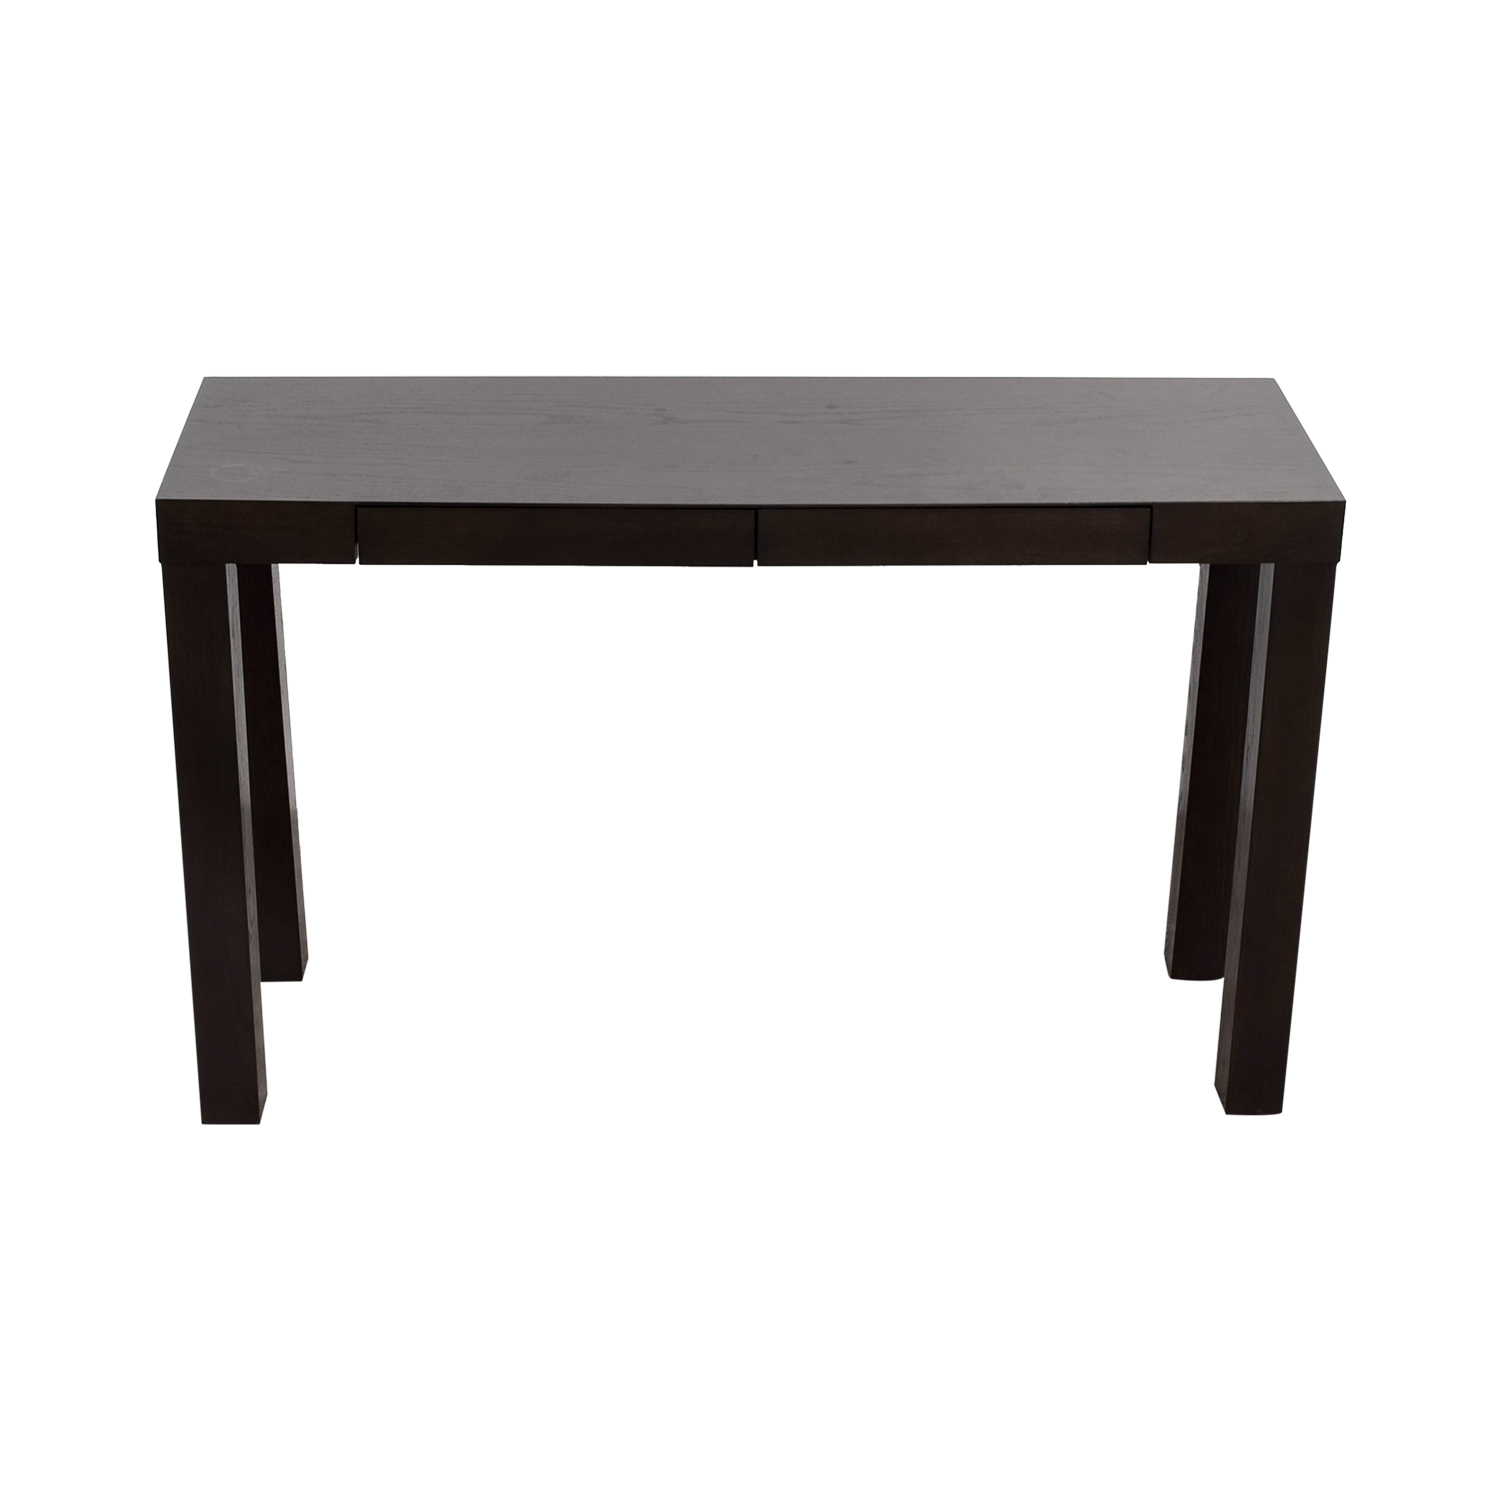 West Elm West Elm Mahogany Two-Drawer Console Table Utility Tables